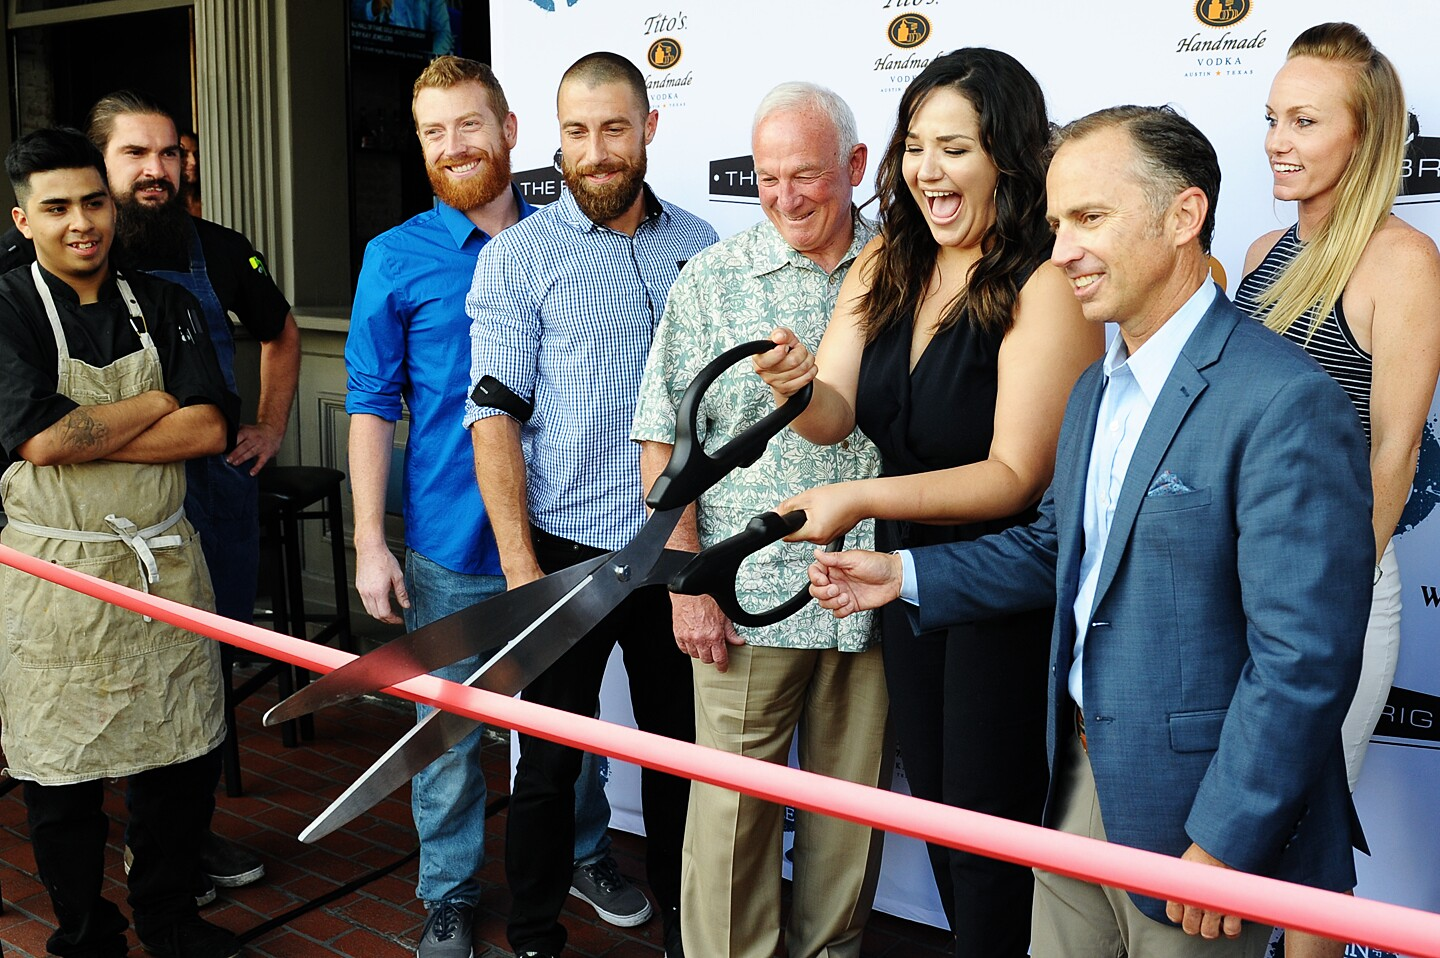 Connecticut-based Sign of the Whale celebrated their Grand Opening on August 2, 2019 with a ribbon cutting ceremony and happy hour specials in historic Gaslamp.